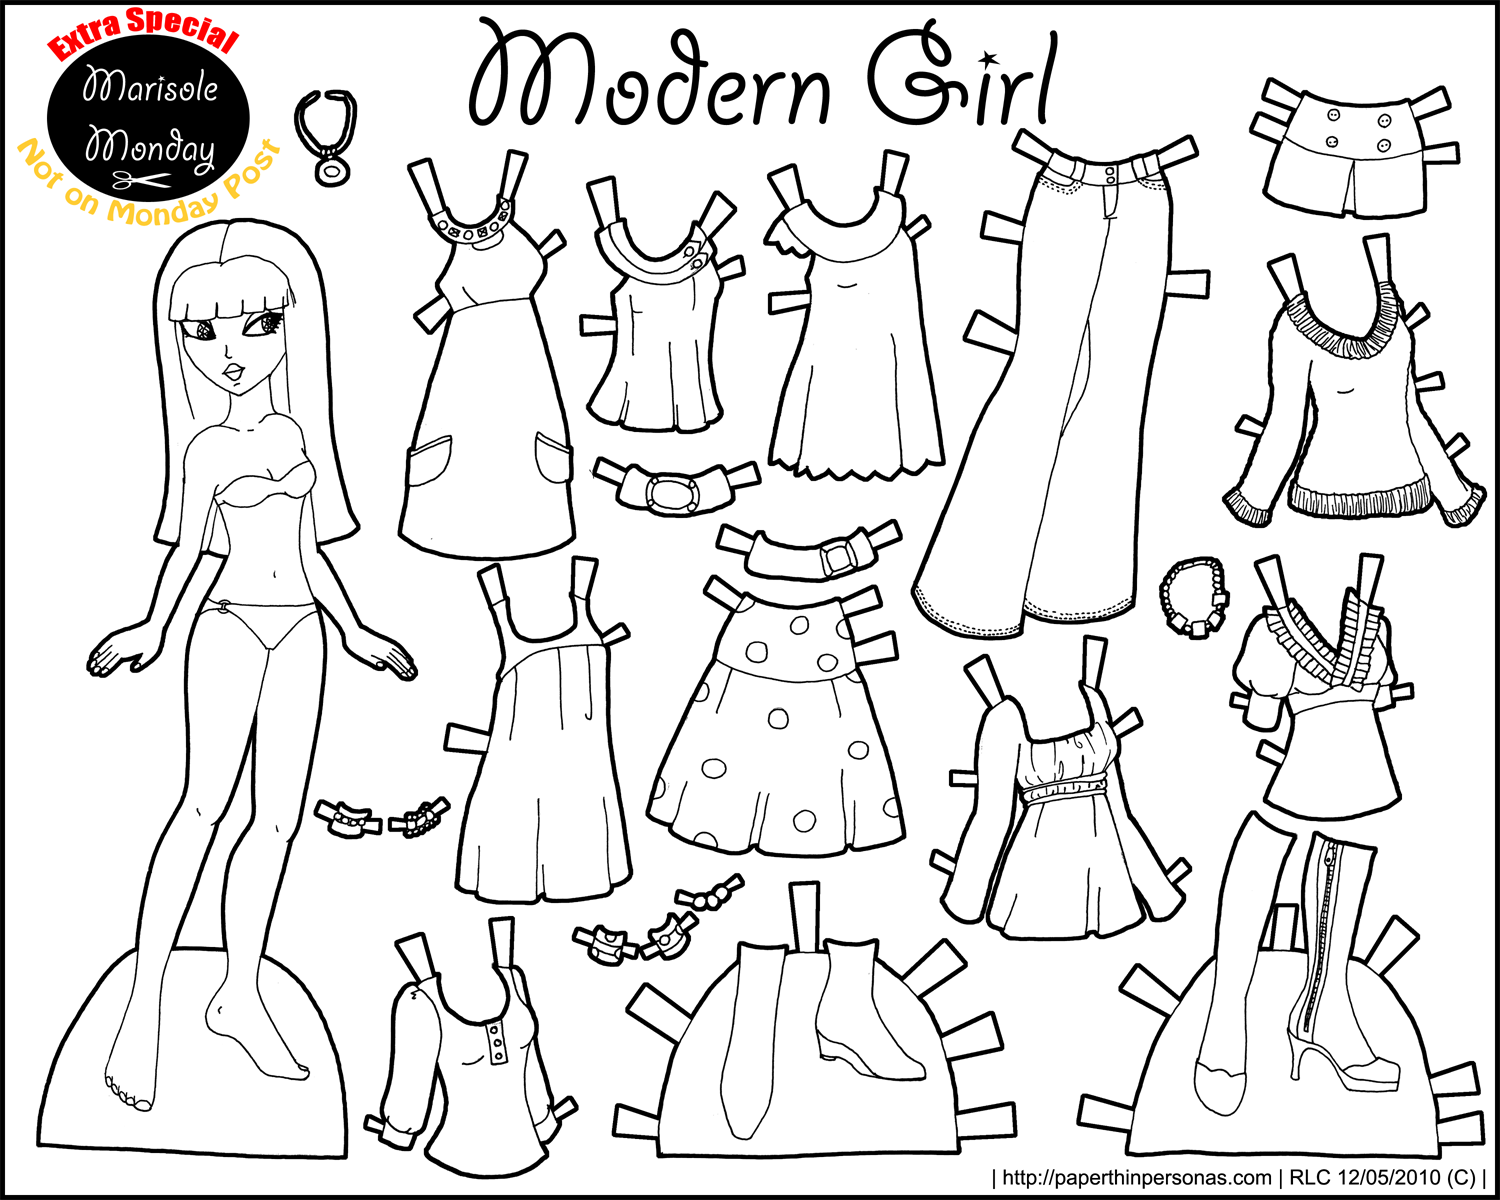 Paper doll clipart black and white banner free Marisole Monday: Modern Girl In Black & White • Paper Thin ... banner free